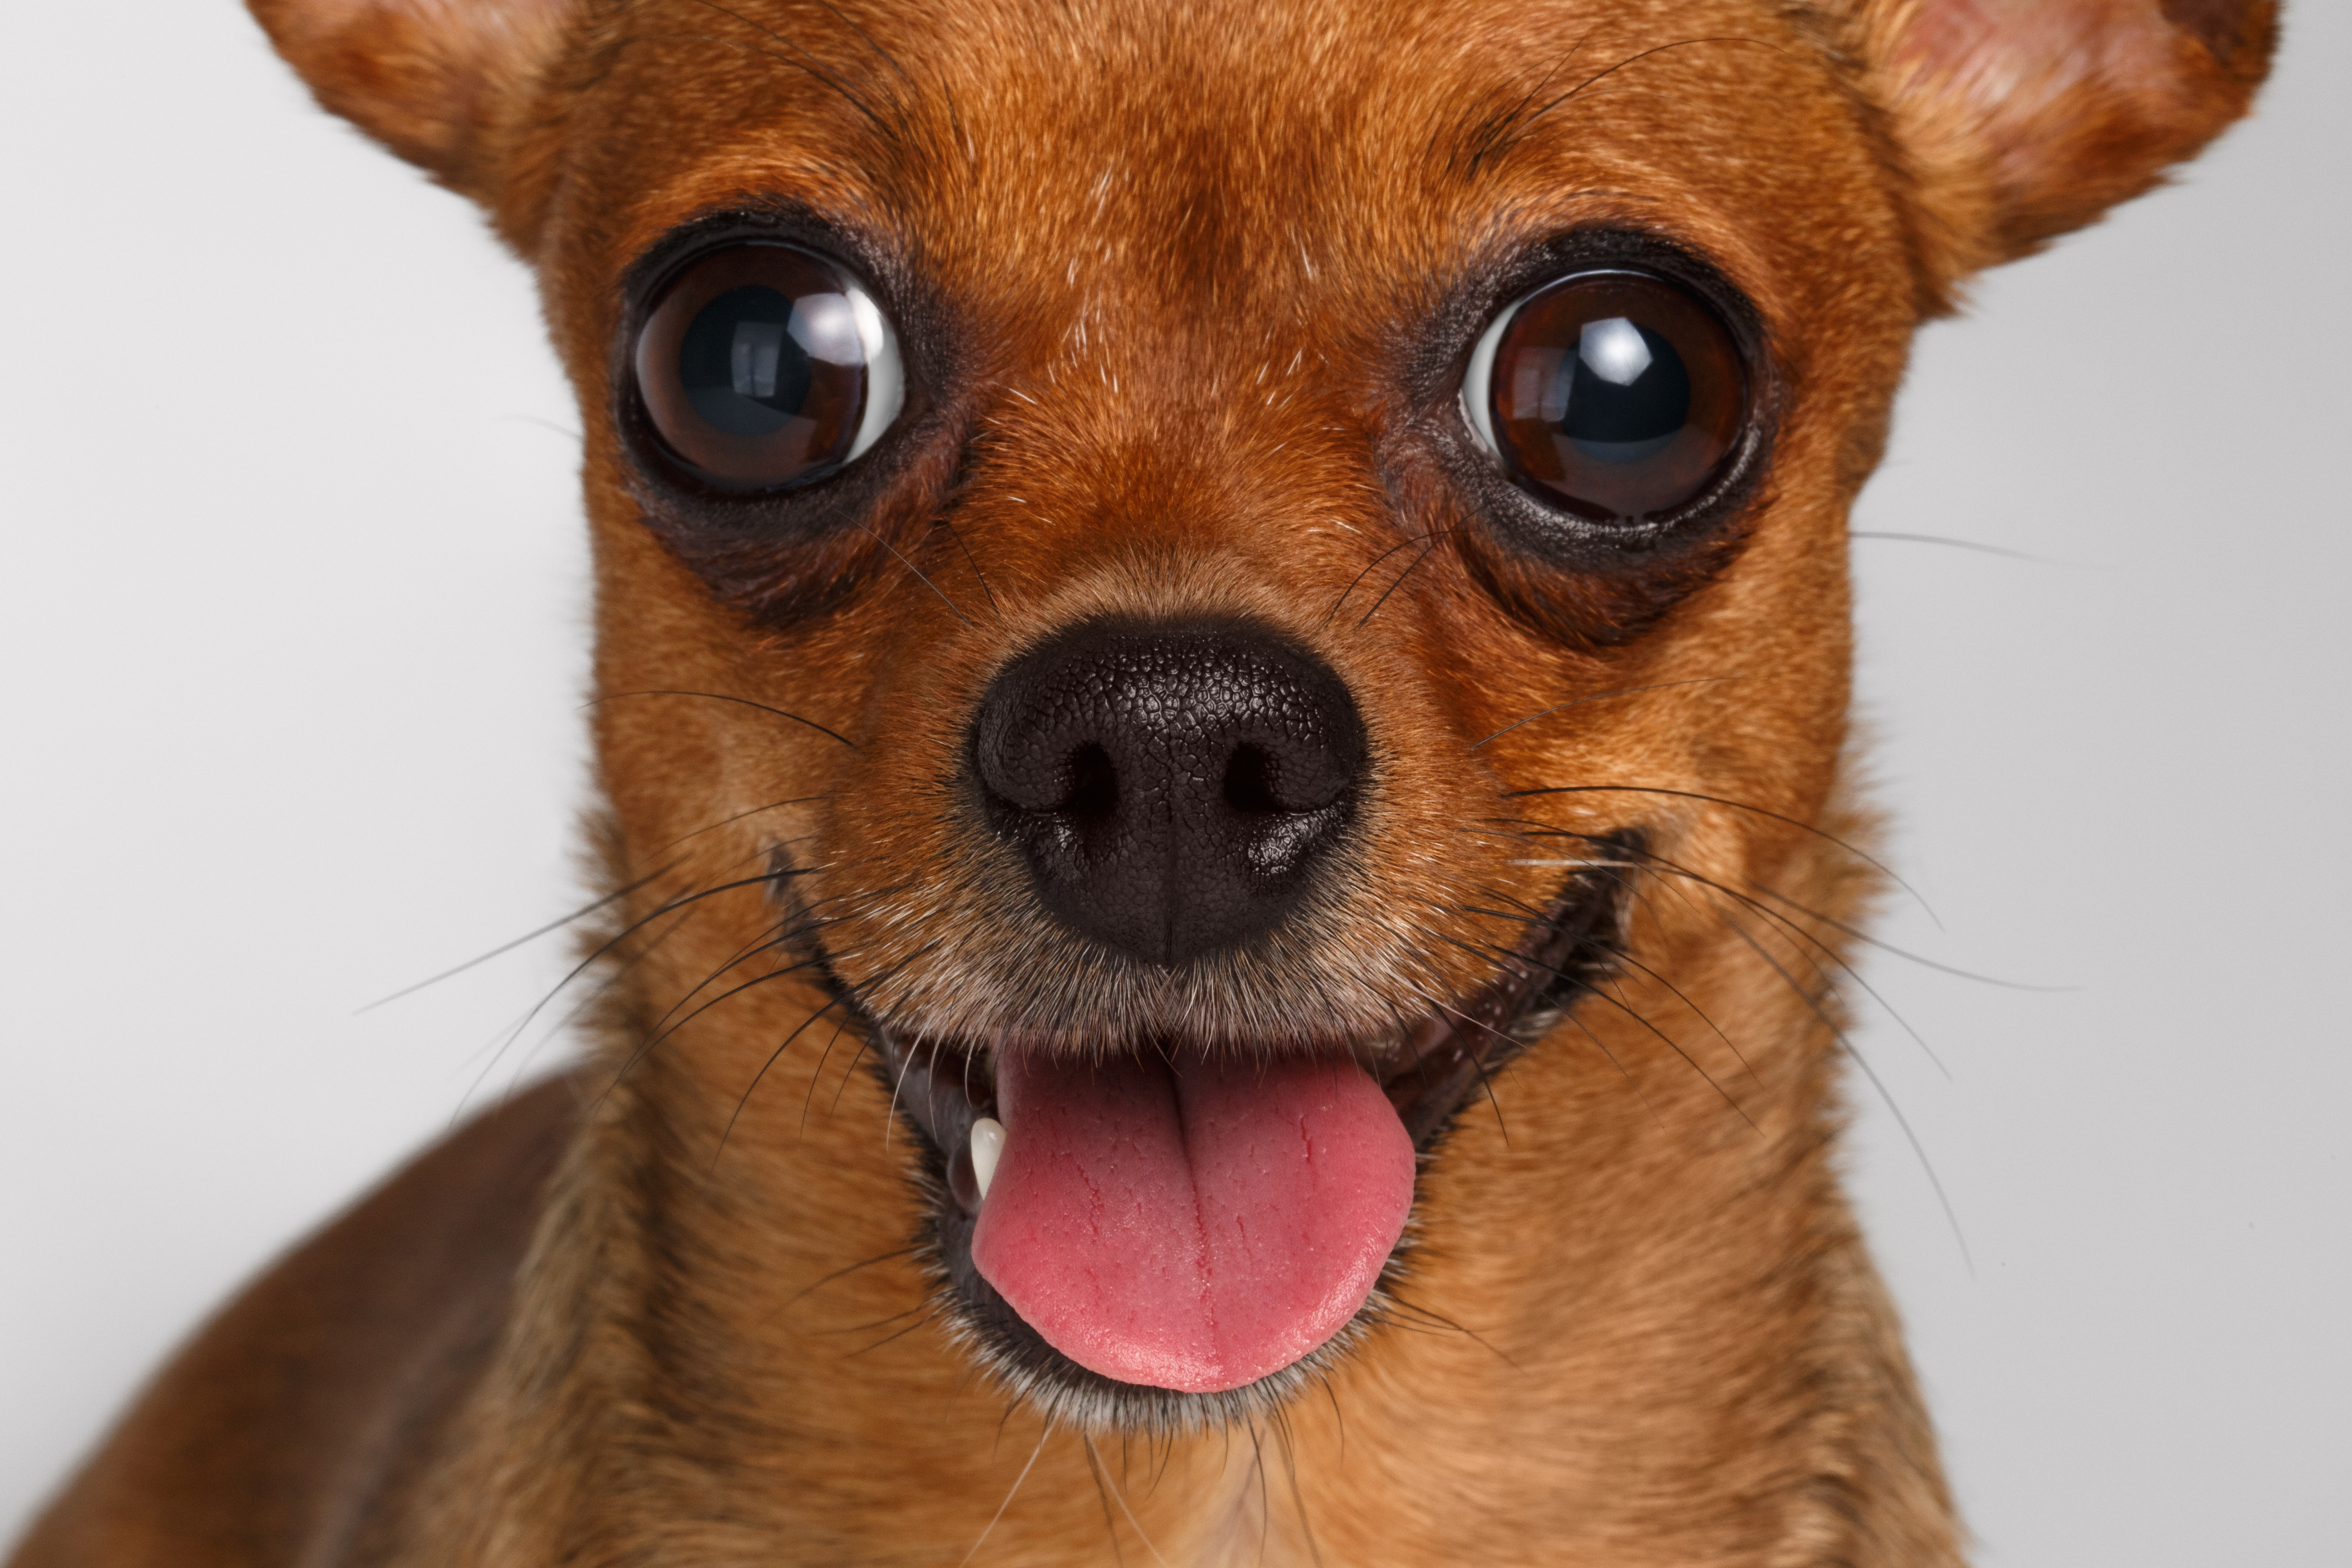 Chihuahuas were once the size of a terrier